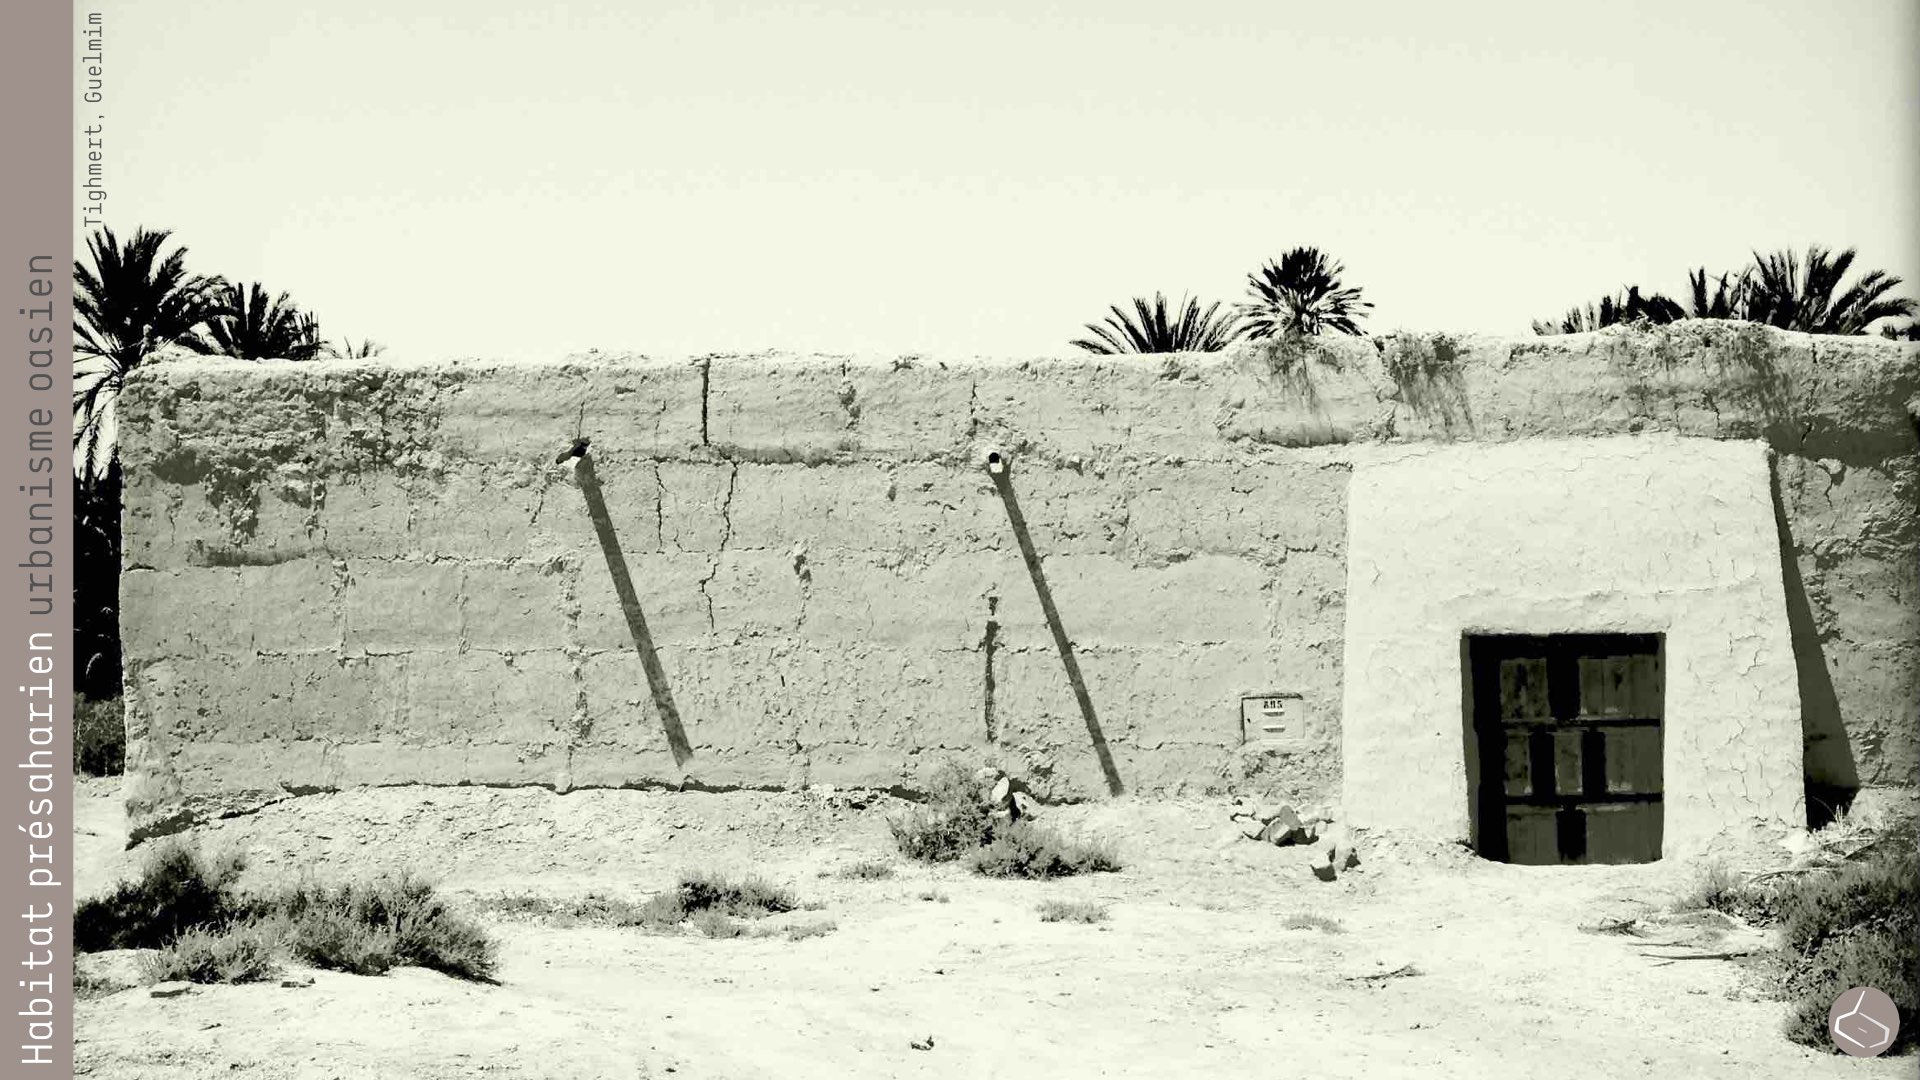 26. Des maisons faites en terre.       26. houses made in rammed earth.